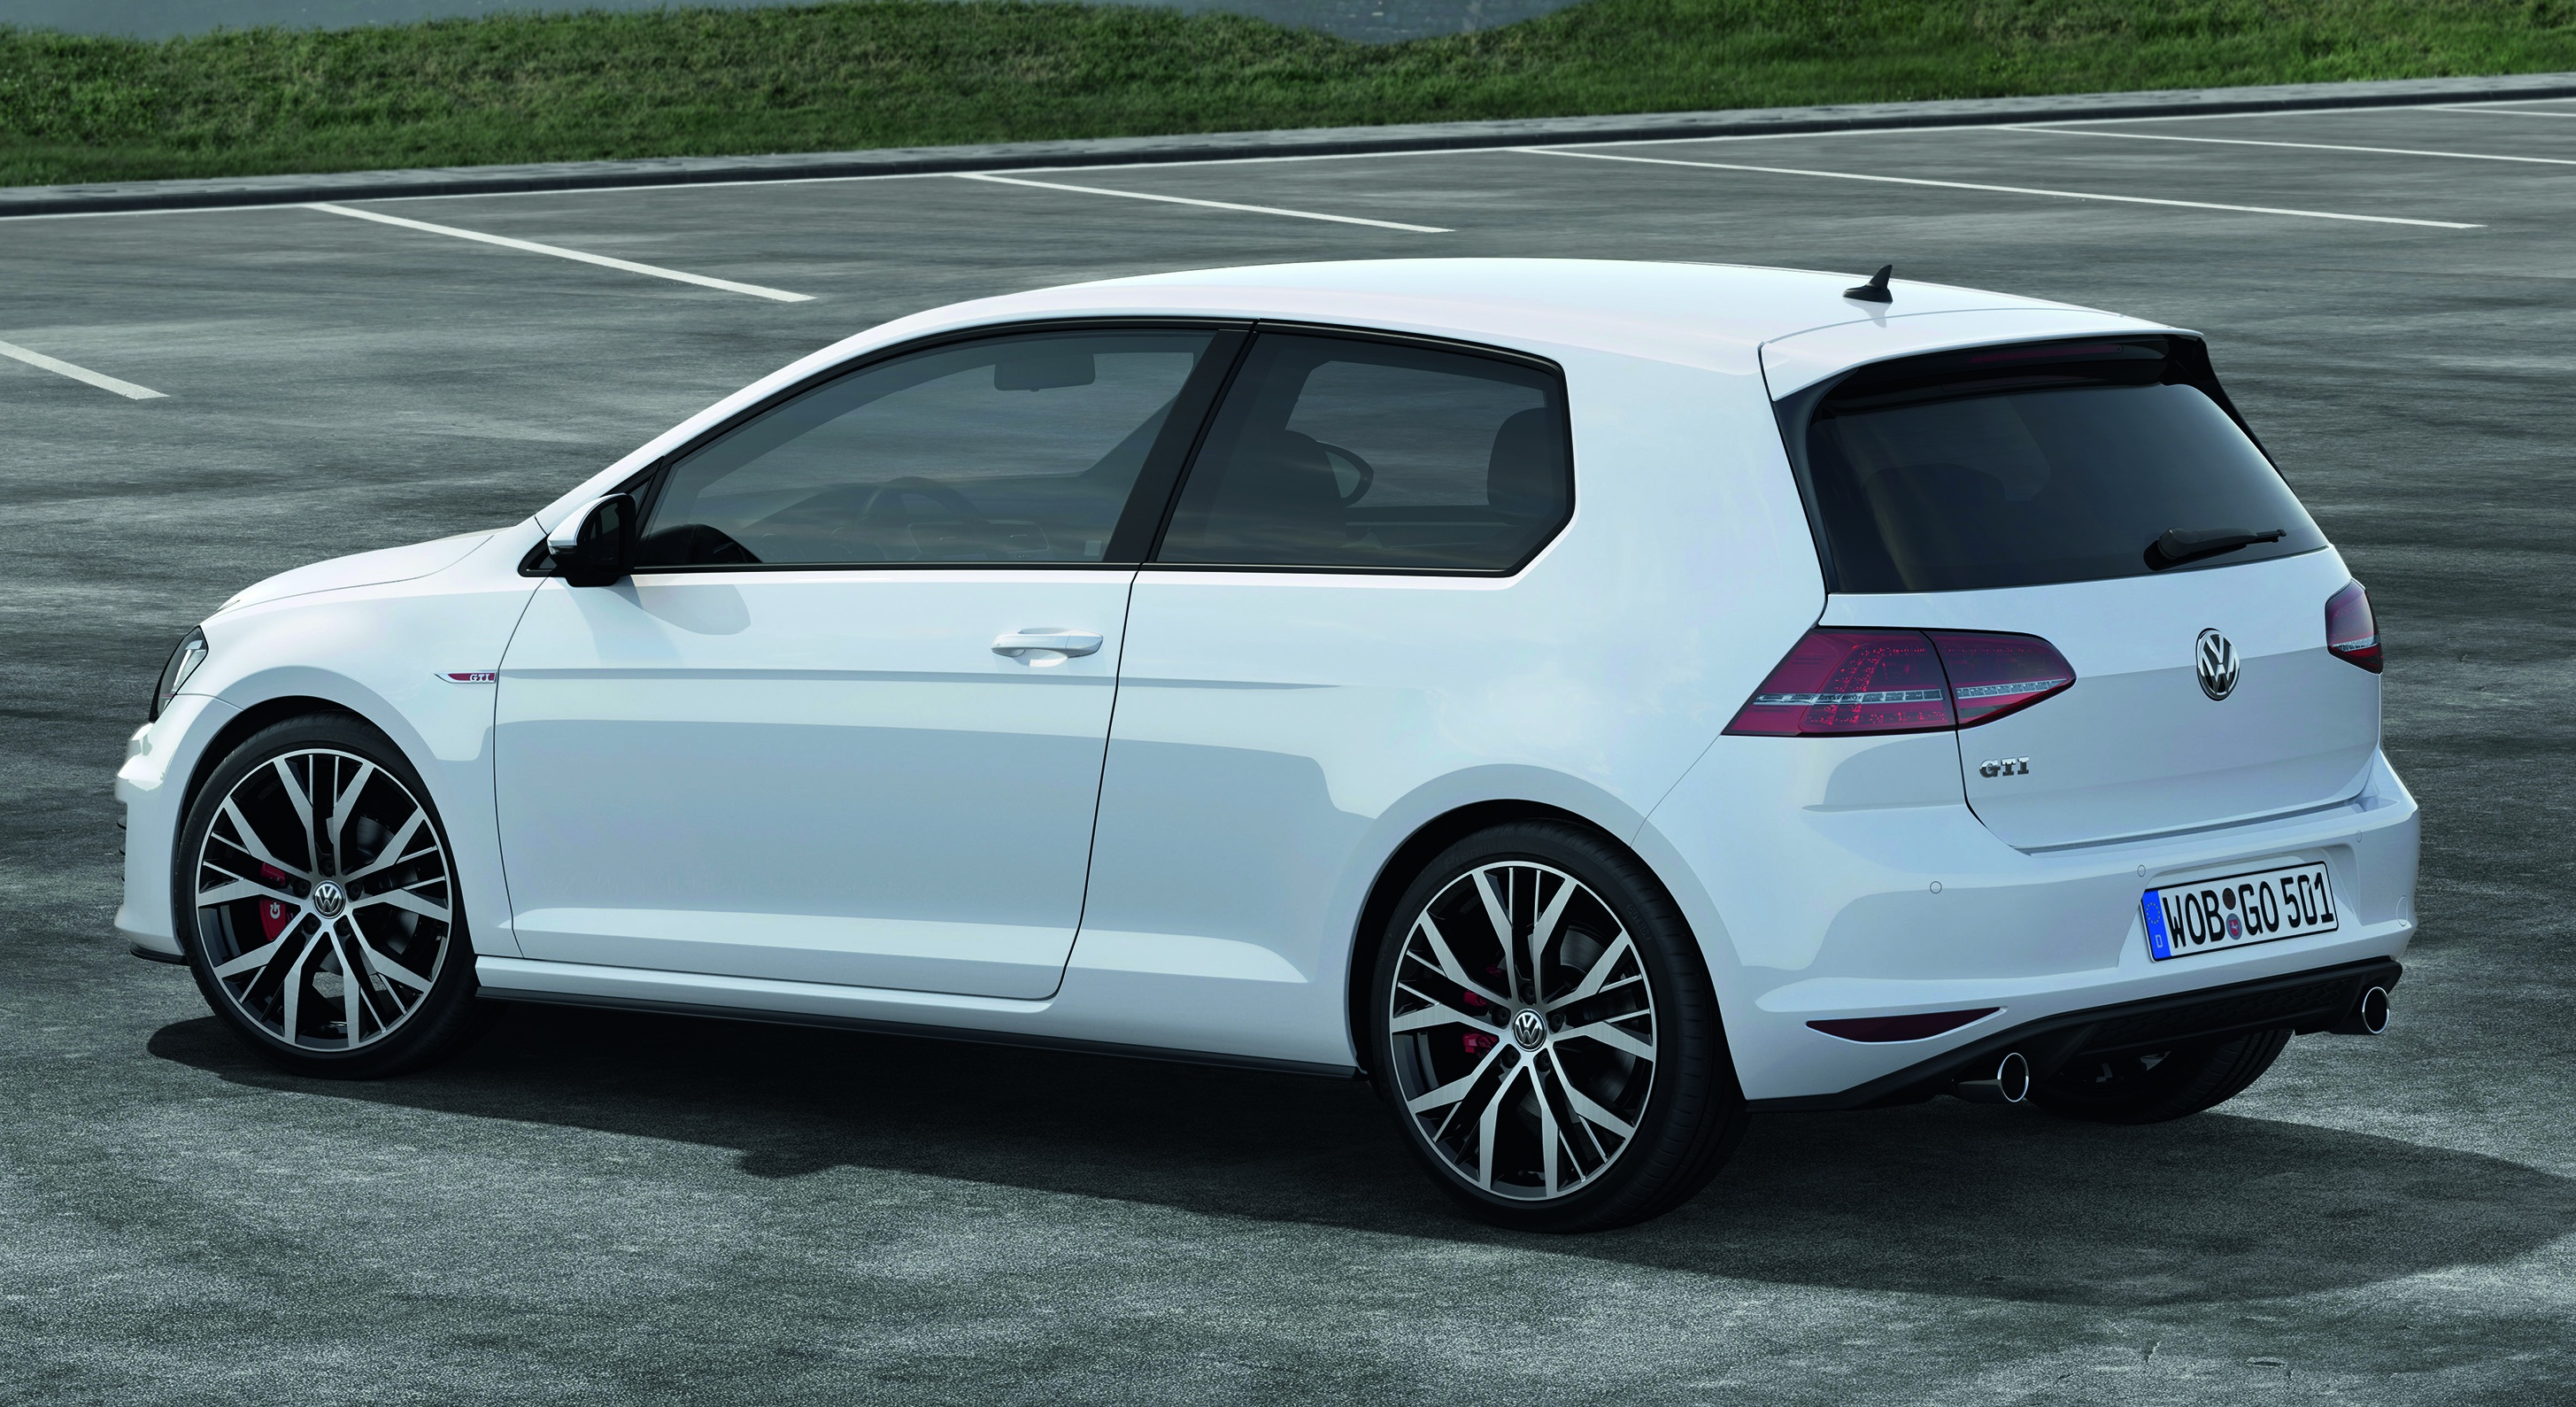 volkswagen golf gti mk7 to premiere in geneva image 157658. Black Bedroom Furniture Sets. Home Design Ideas